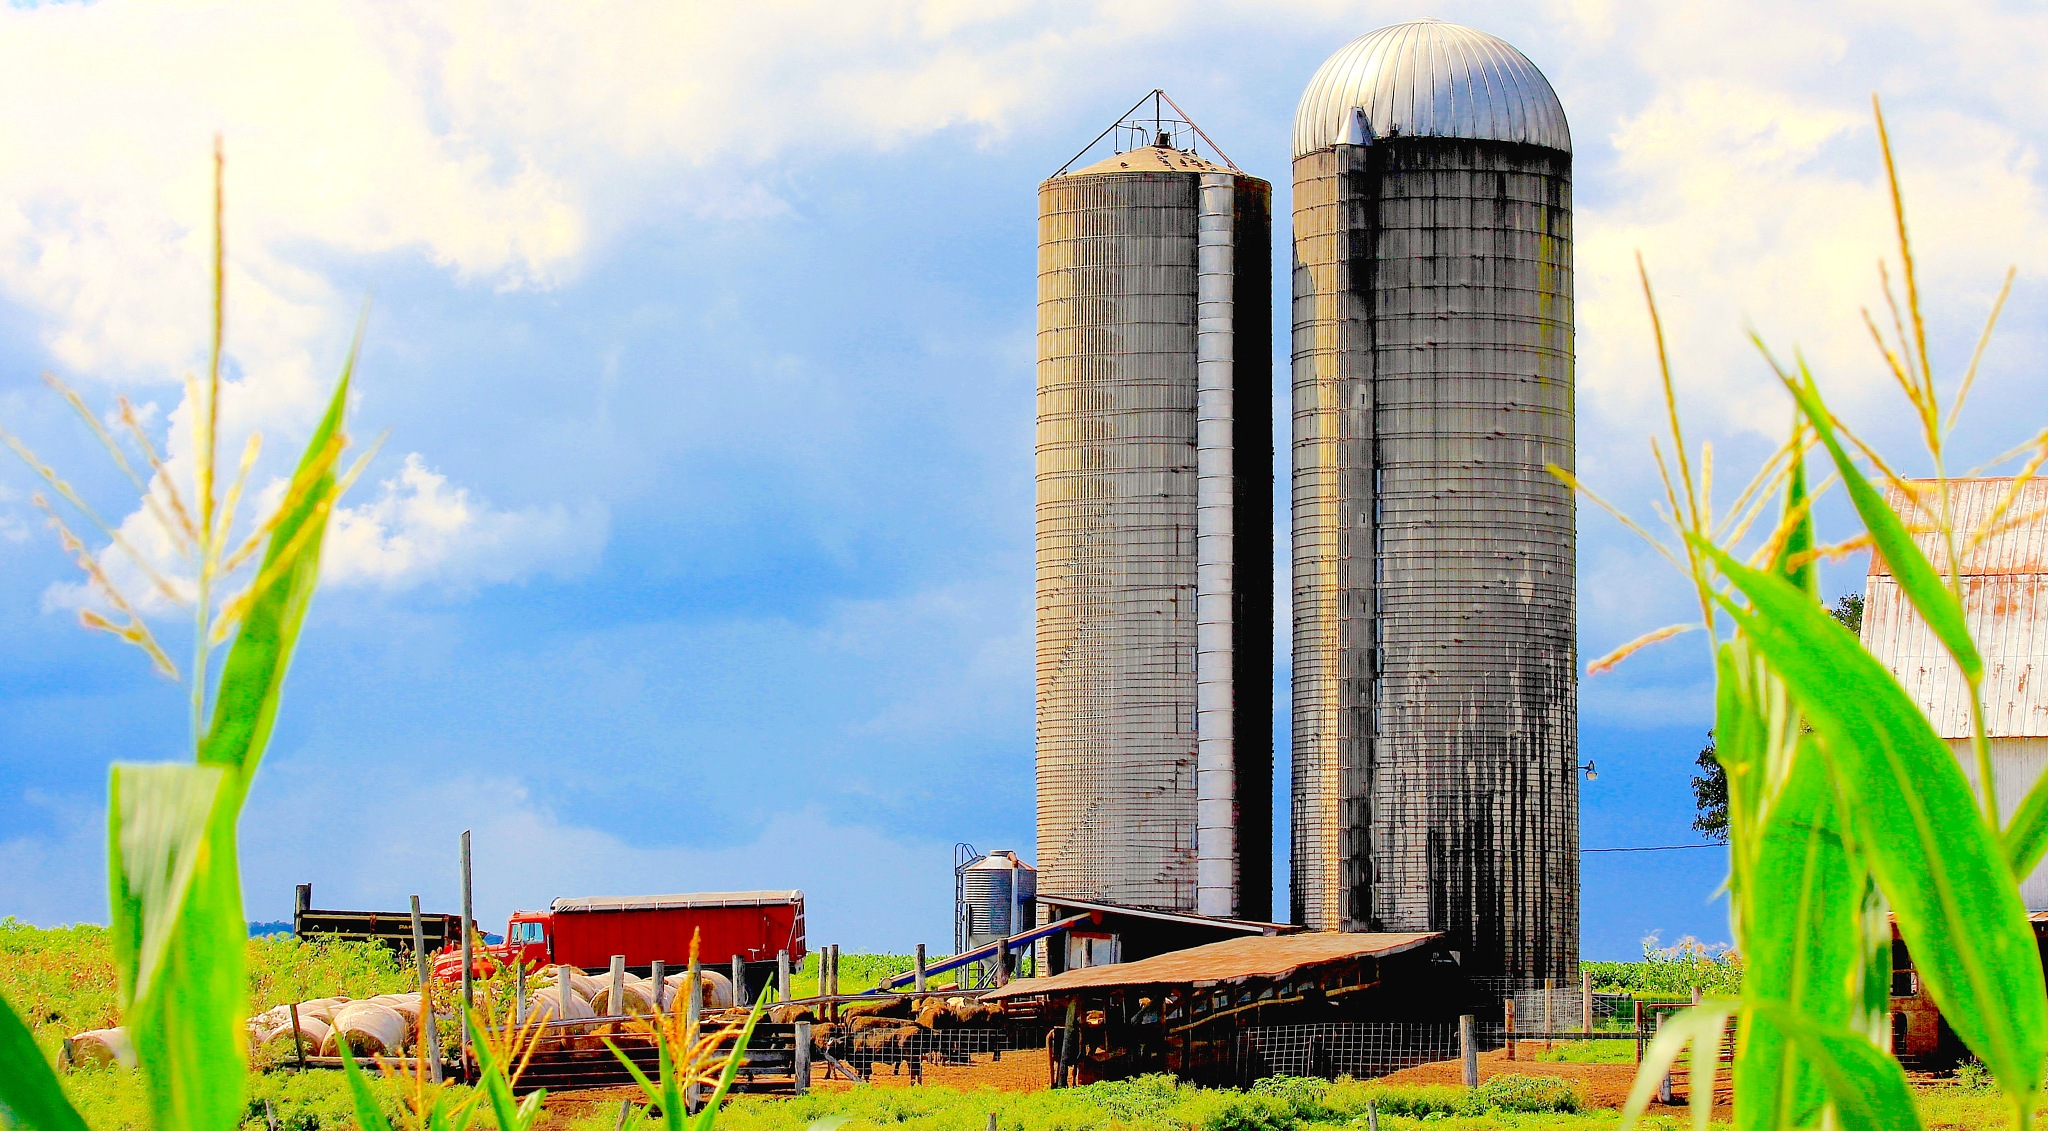 Silos, Above Blue Sky, Clouds Fly. Soon All Will Be Gone. Quit Selling Our Farms! by suzanne.kohr